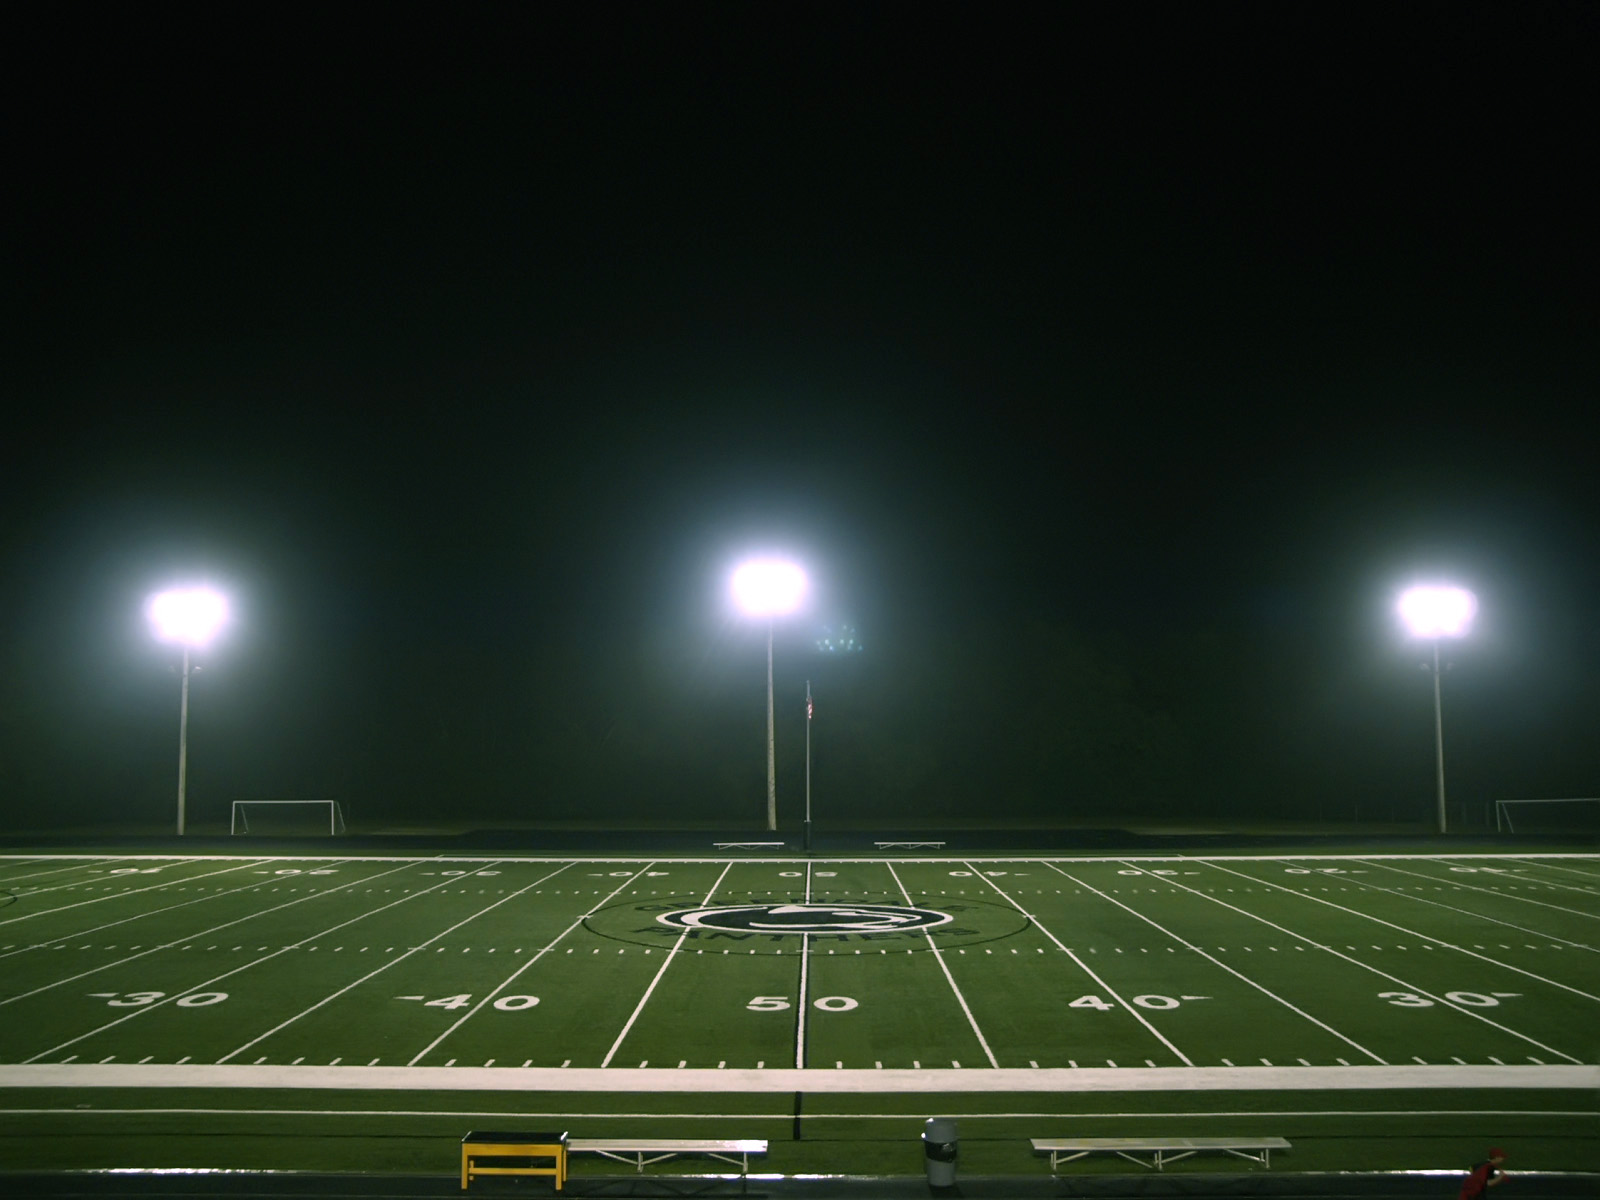 Football Field wallpaper Football Field hd wallpaper background 1600x1200